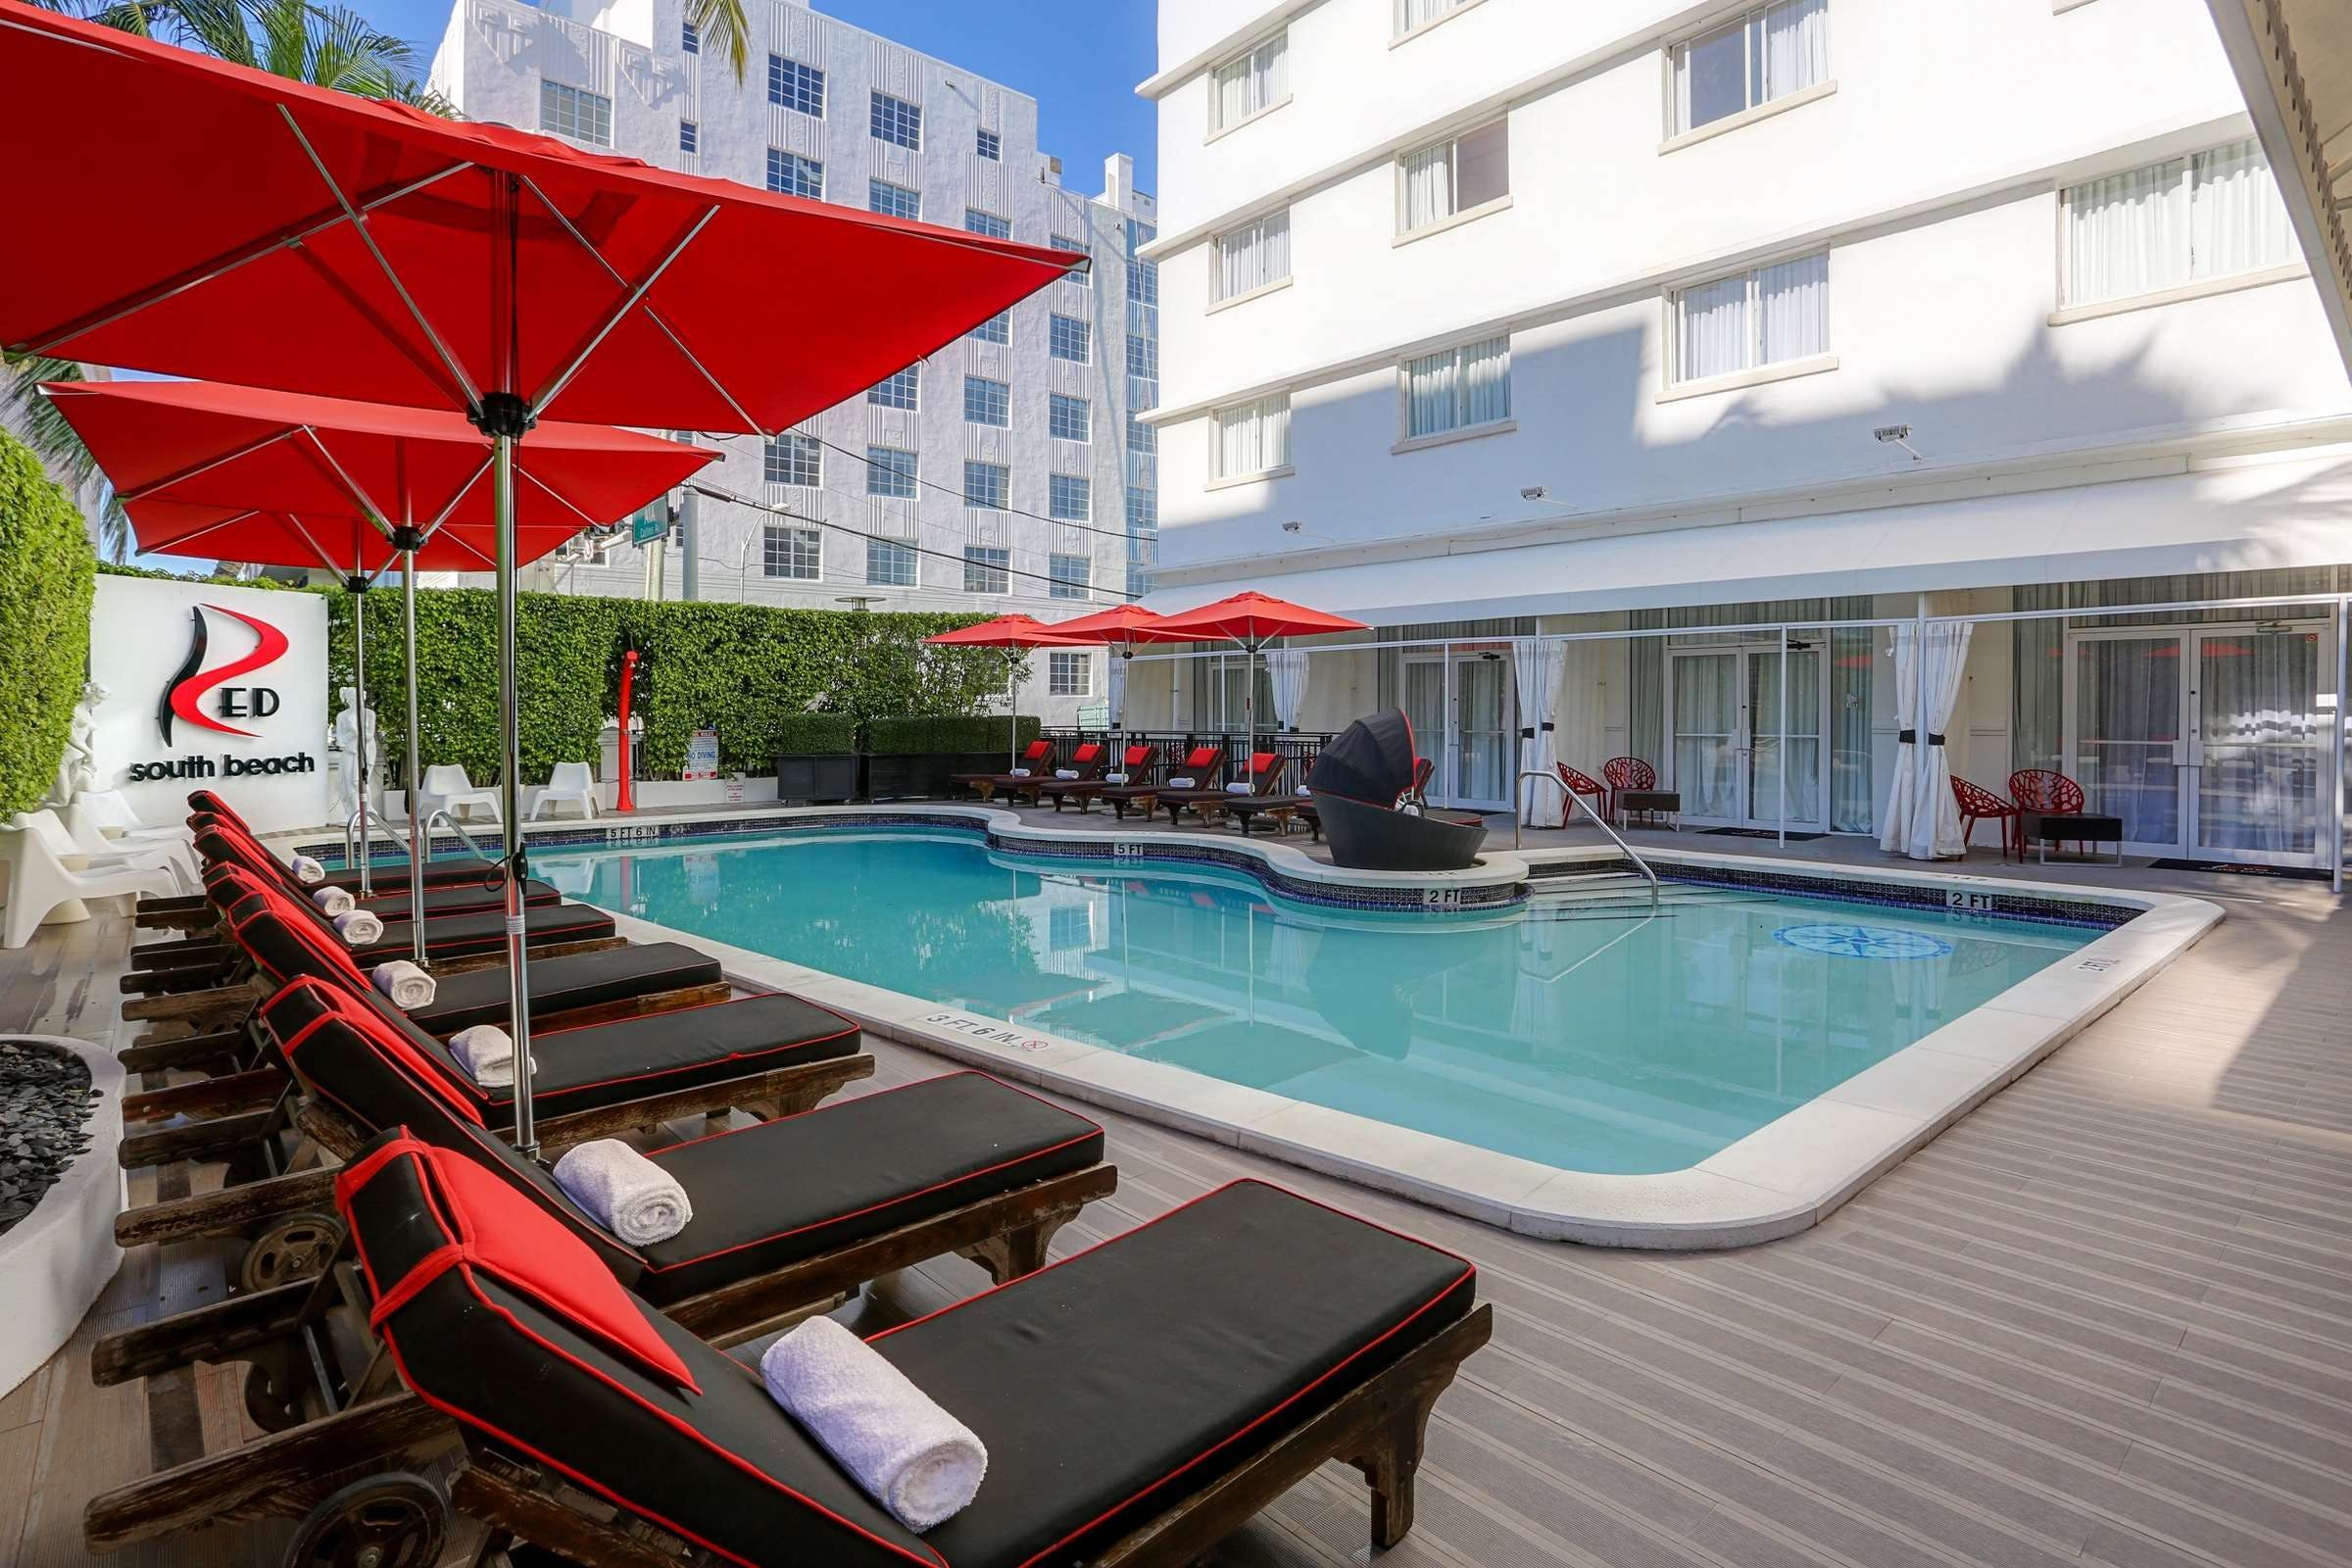 Red South Beach Hotel